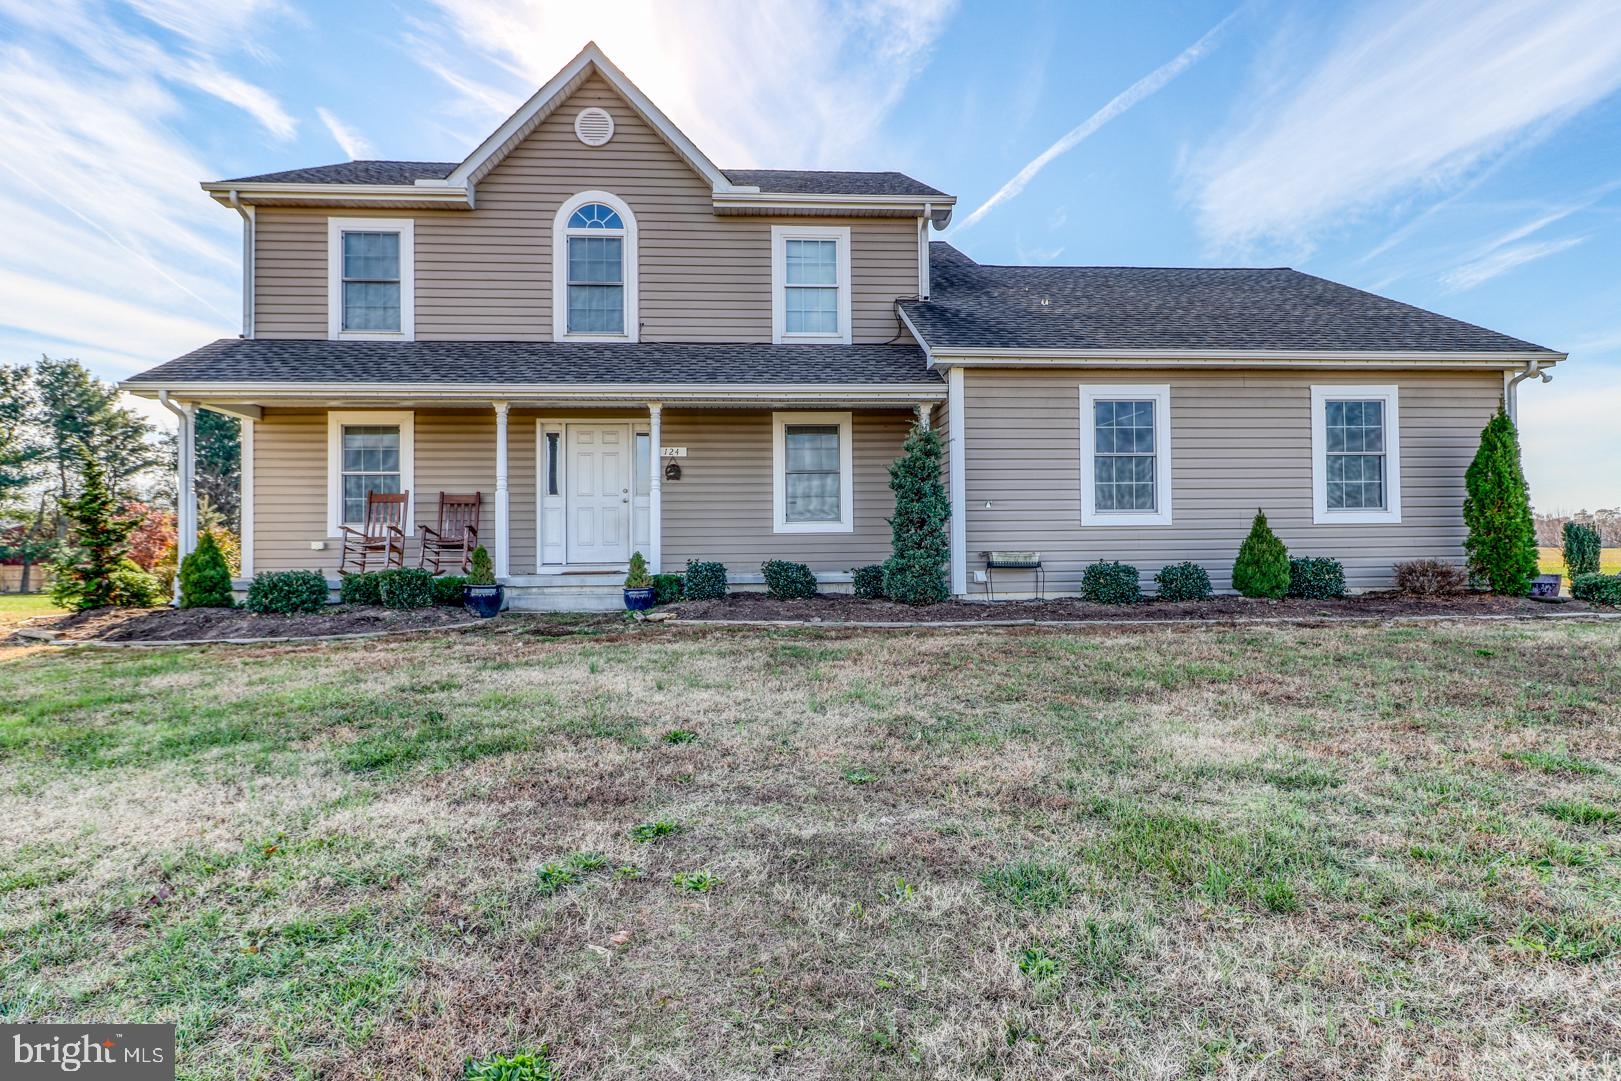 Spacious 4BR 2.5 BA Home on 2.33 Acres. Home is located in Church Hill, but is one of the rare finds